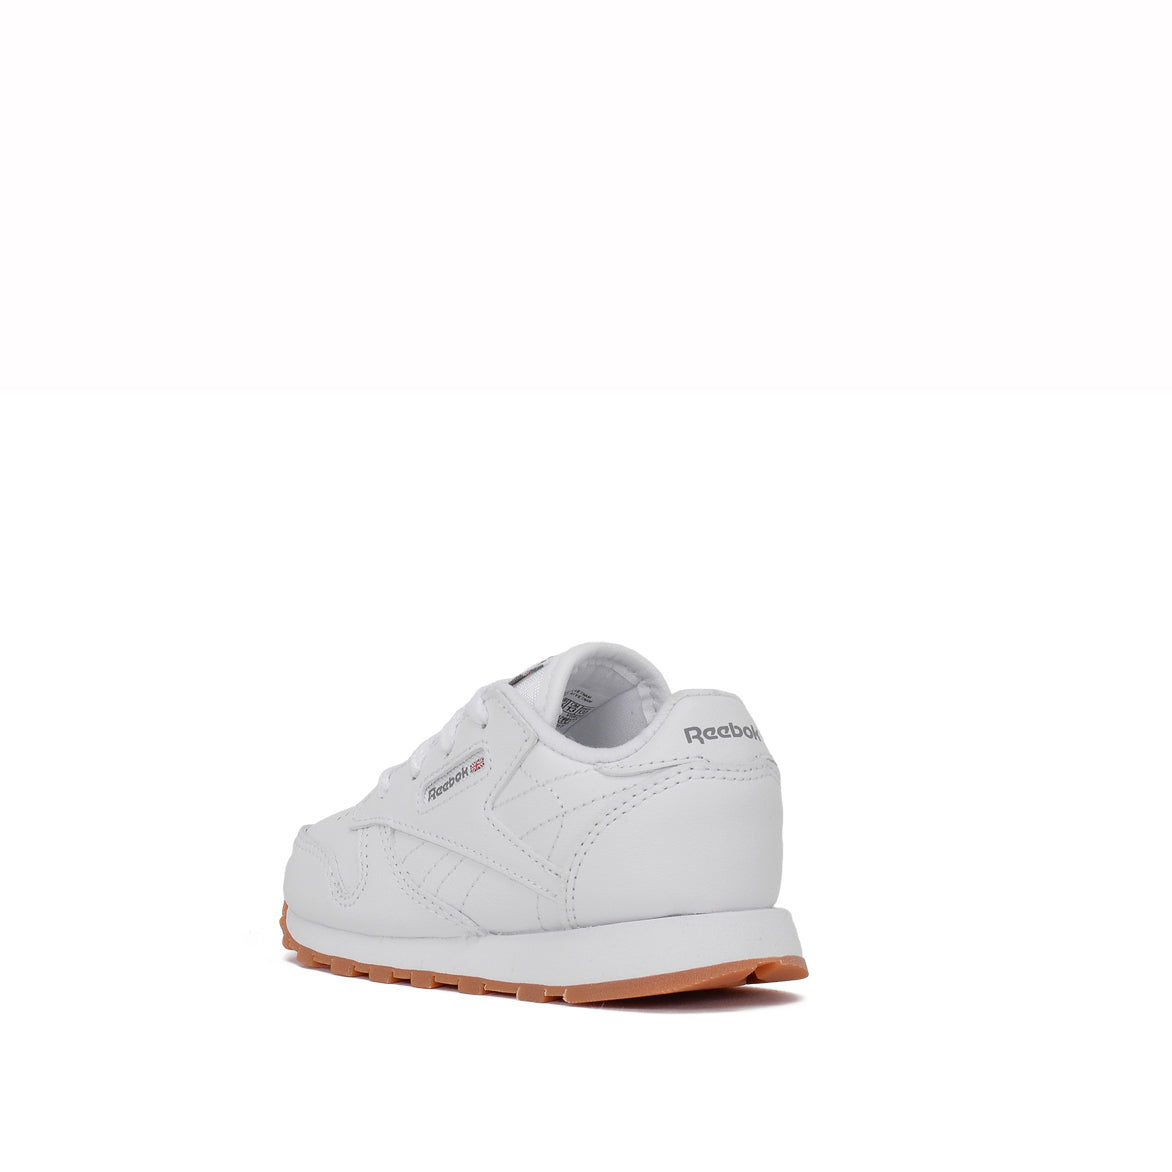 5152566d744 ... CLASSIC LEATHER (TODDLER) - WHITE   GUM ...